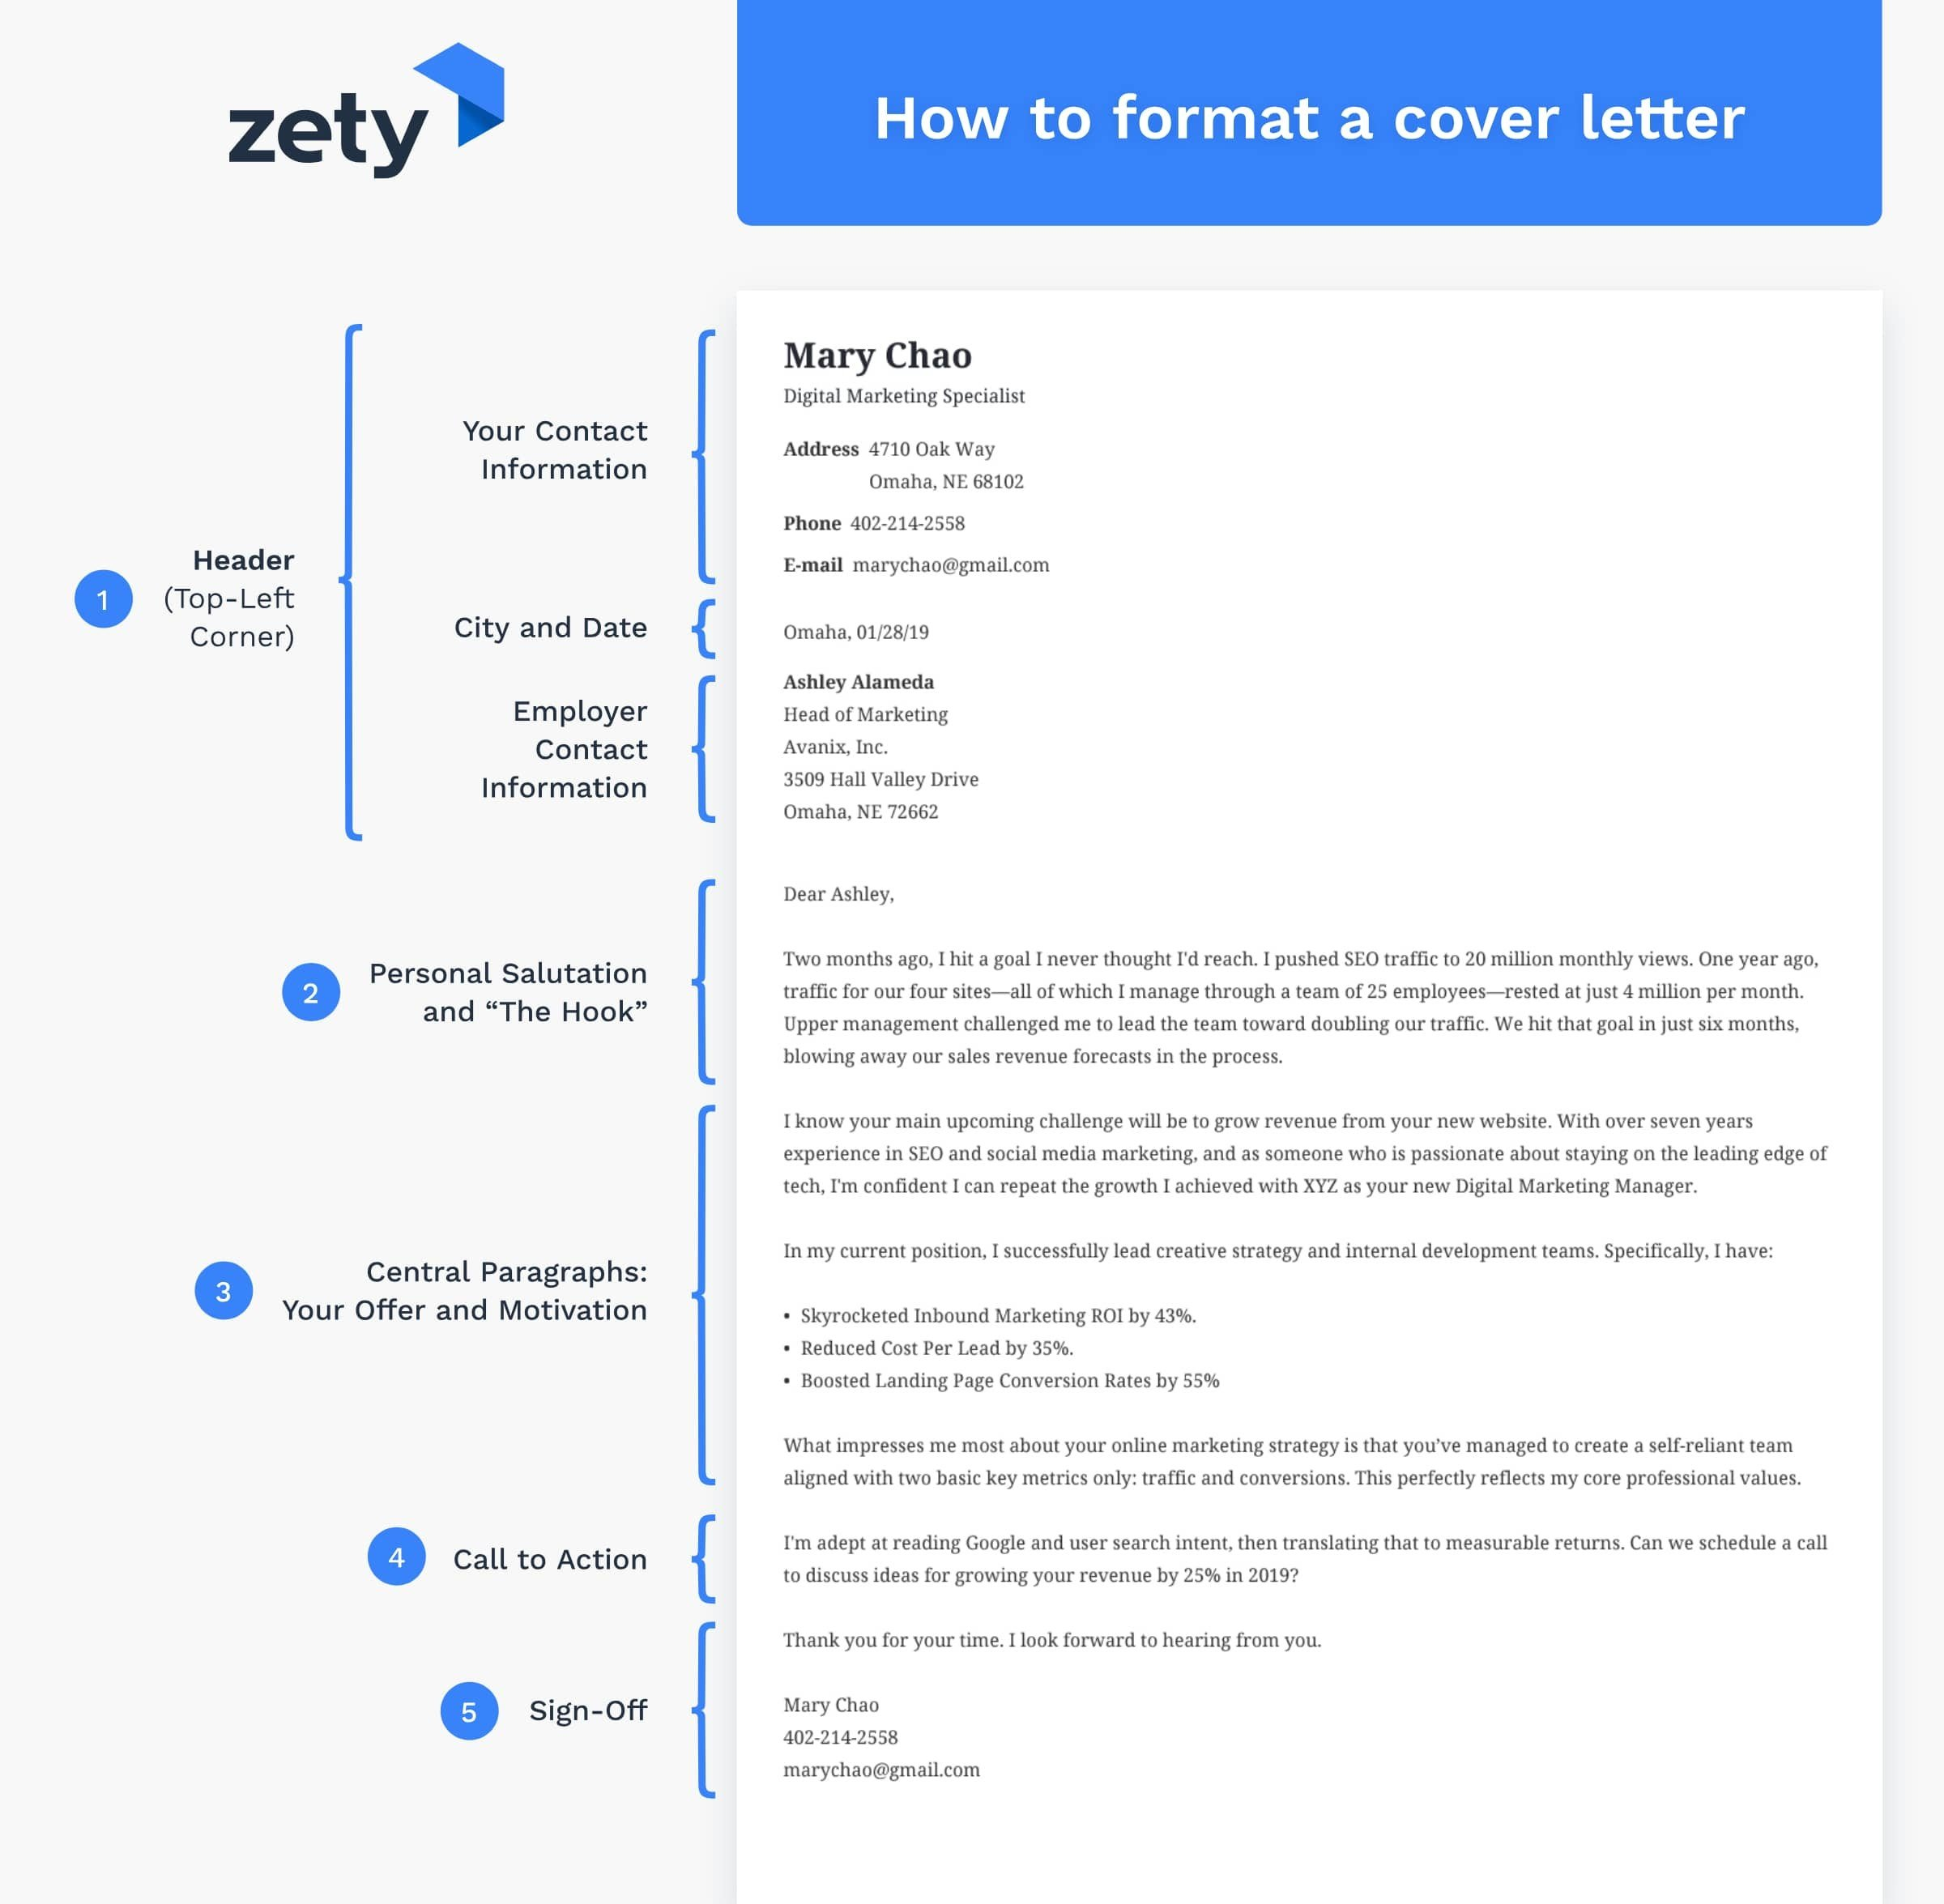 Cover Letter Format Templates Ready To Use Layouts 20 Samples